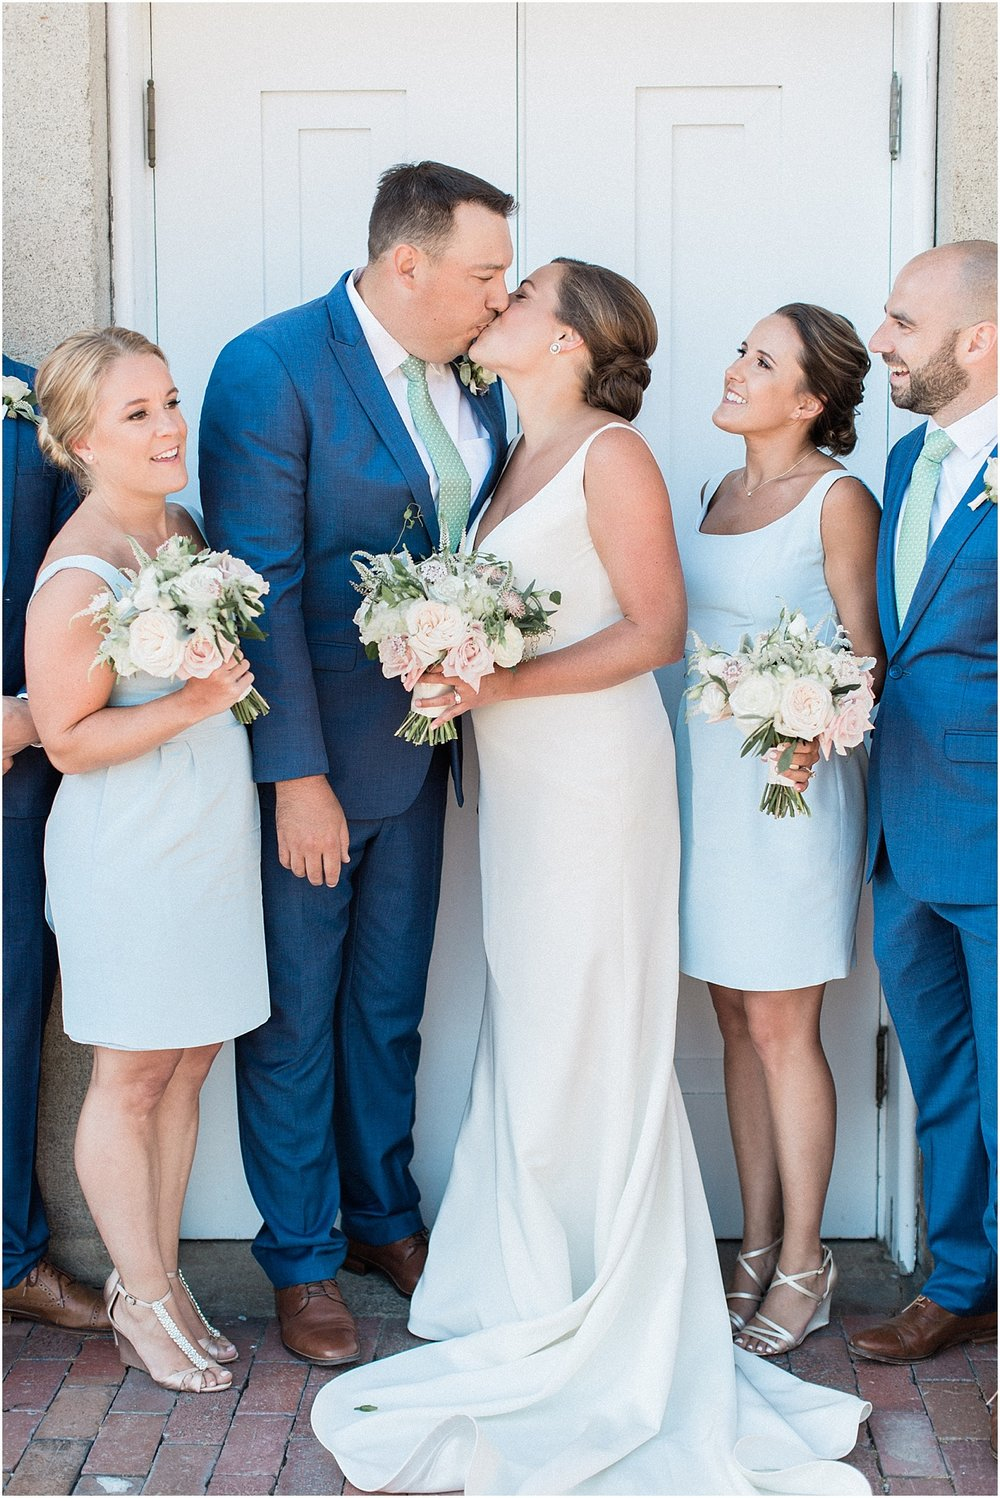 erica_pat_desilva_stevens_fort_adams_tented_rhode_island_newport_st_marys_church_cape_cod_boston_wedding_photographer_meredith_jane_photography_photo_0543.jpg